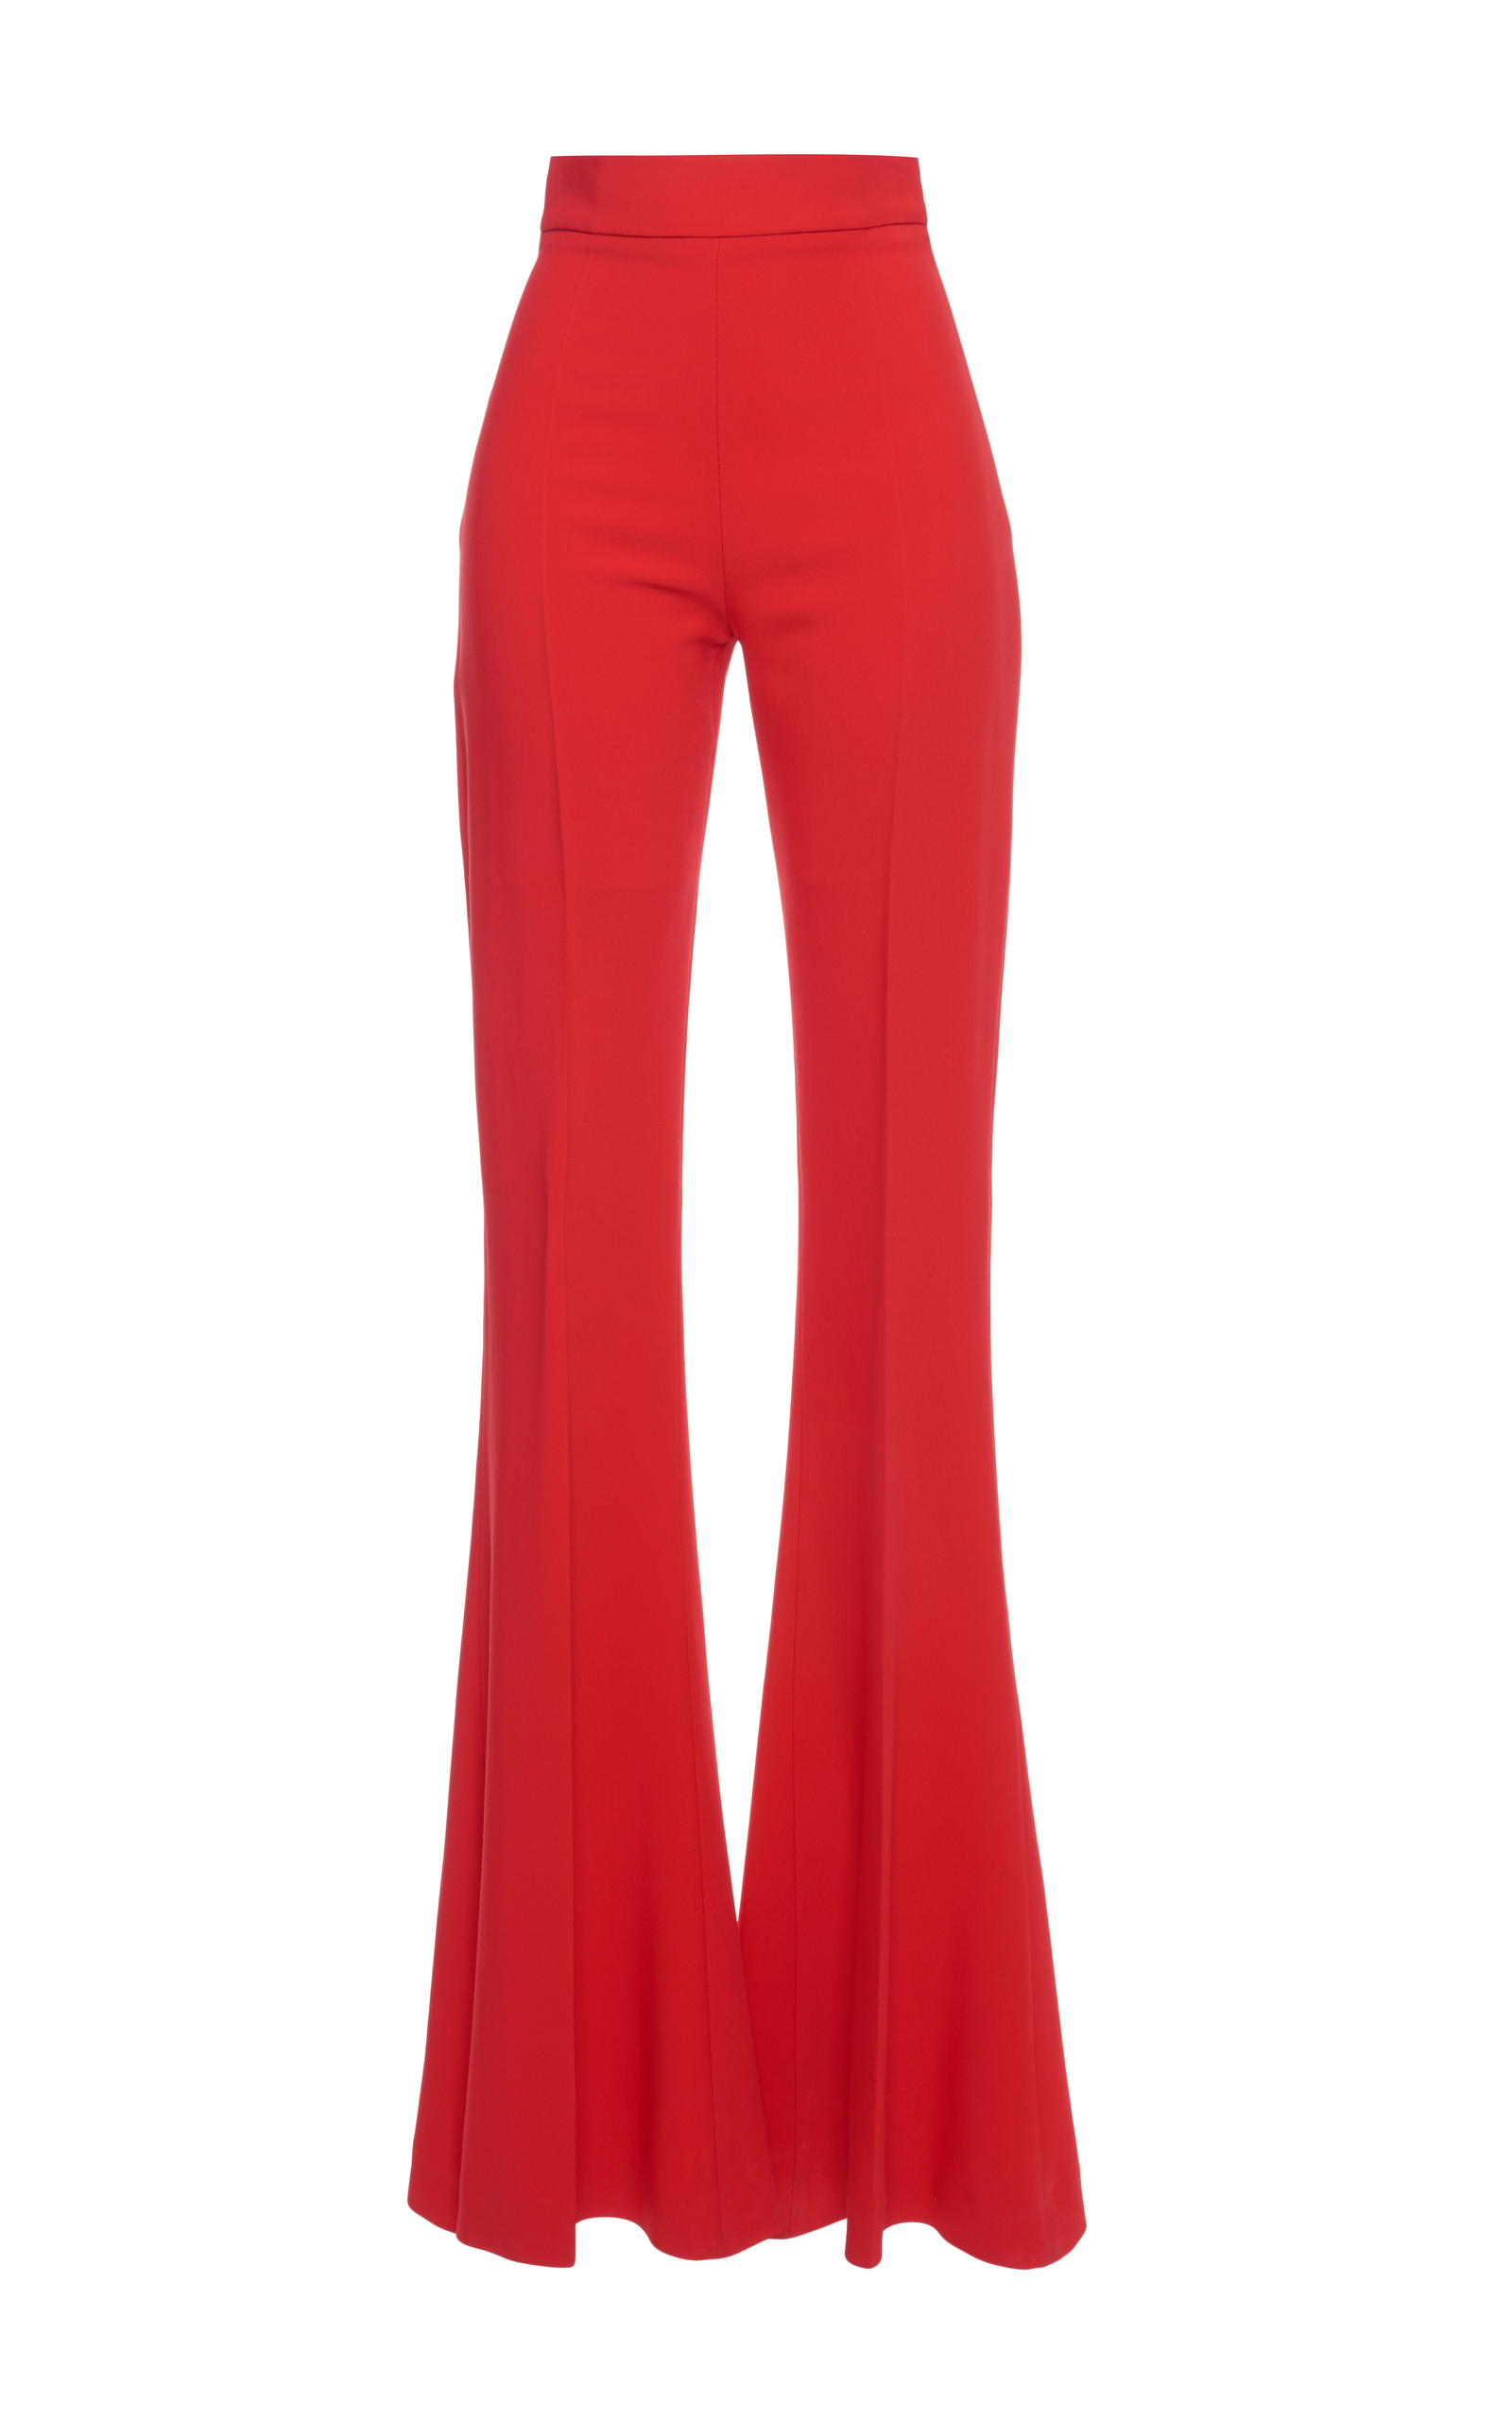 Antonio Berardi high waisted flared trousers Best Selling Cheap Sale Nicekicks 8pW6C7L